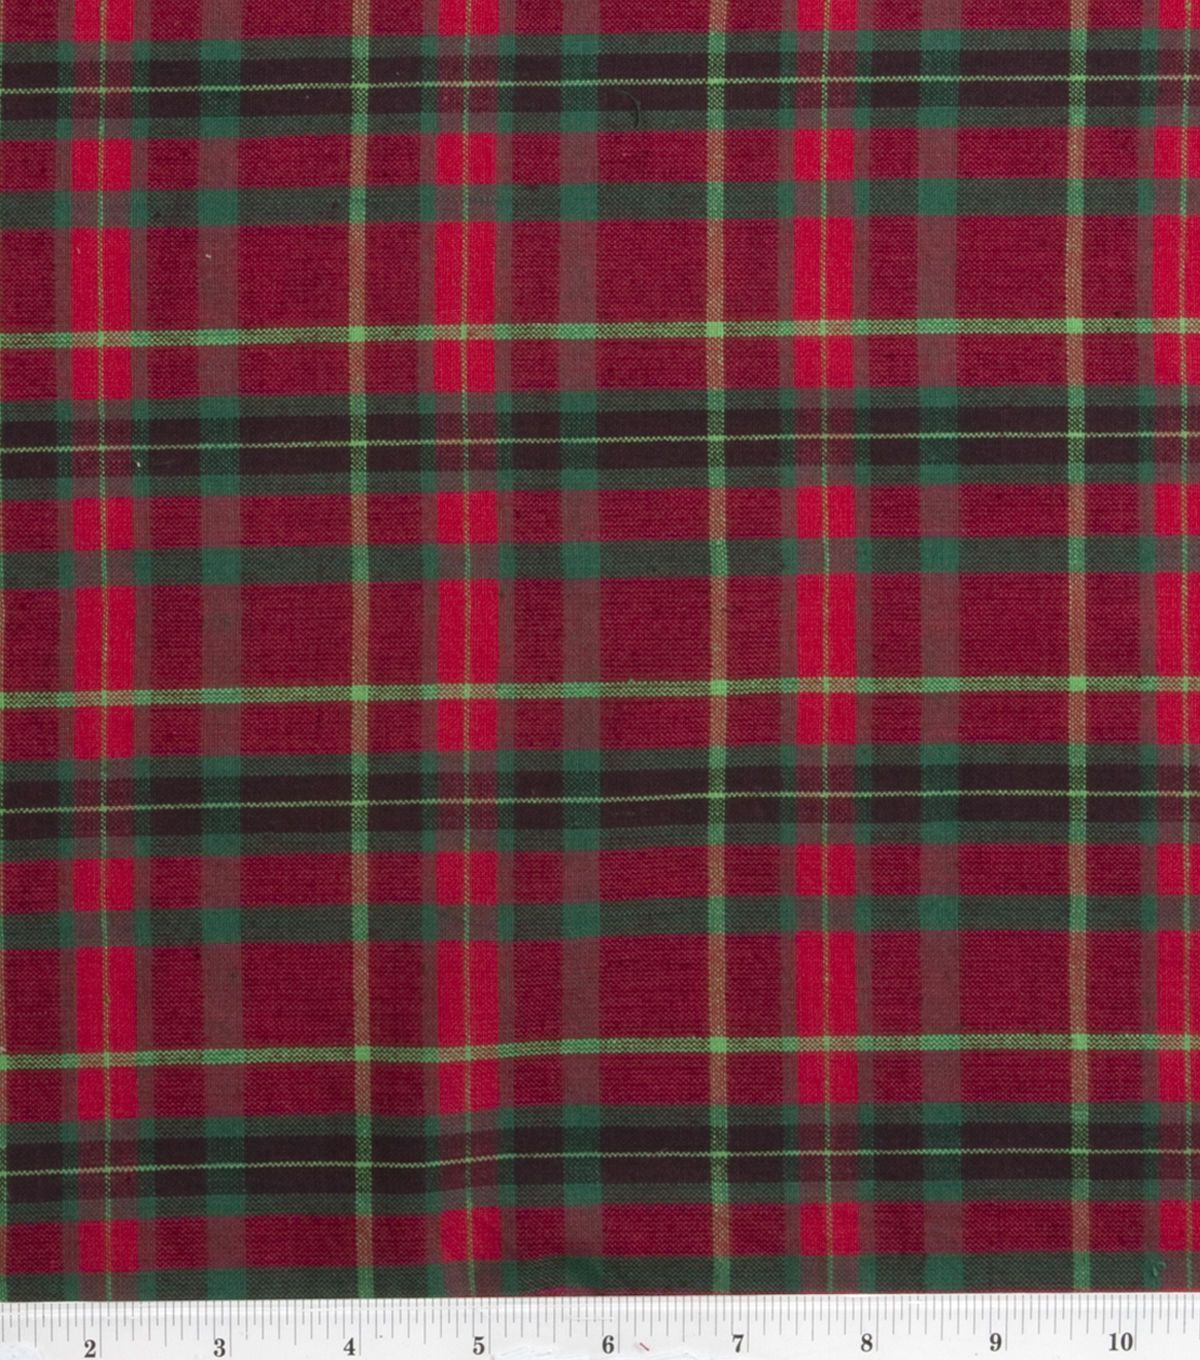 Homespun cotton fabricmedium plaid redgreen plaid red green and